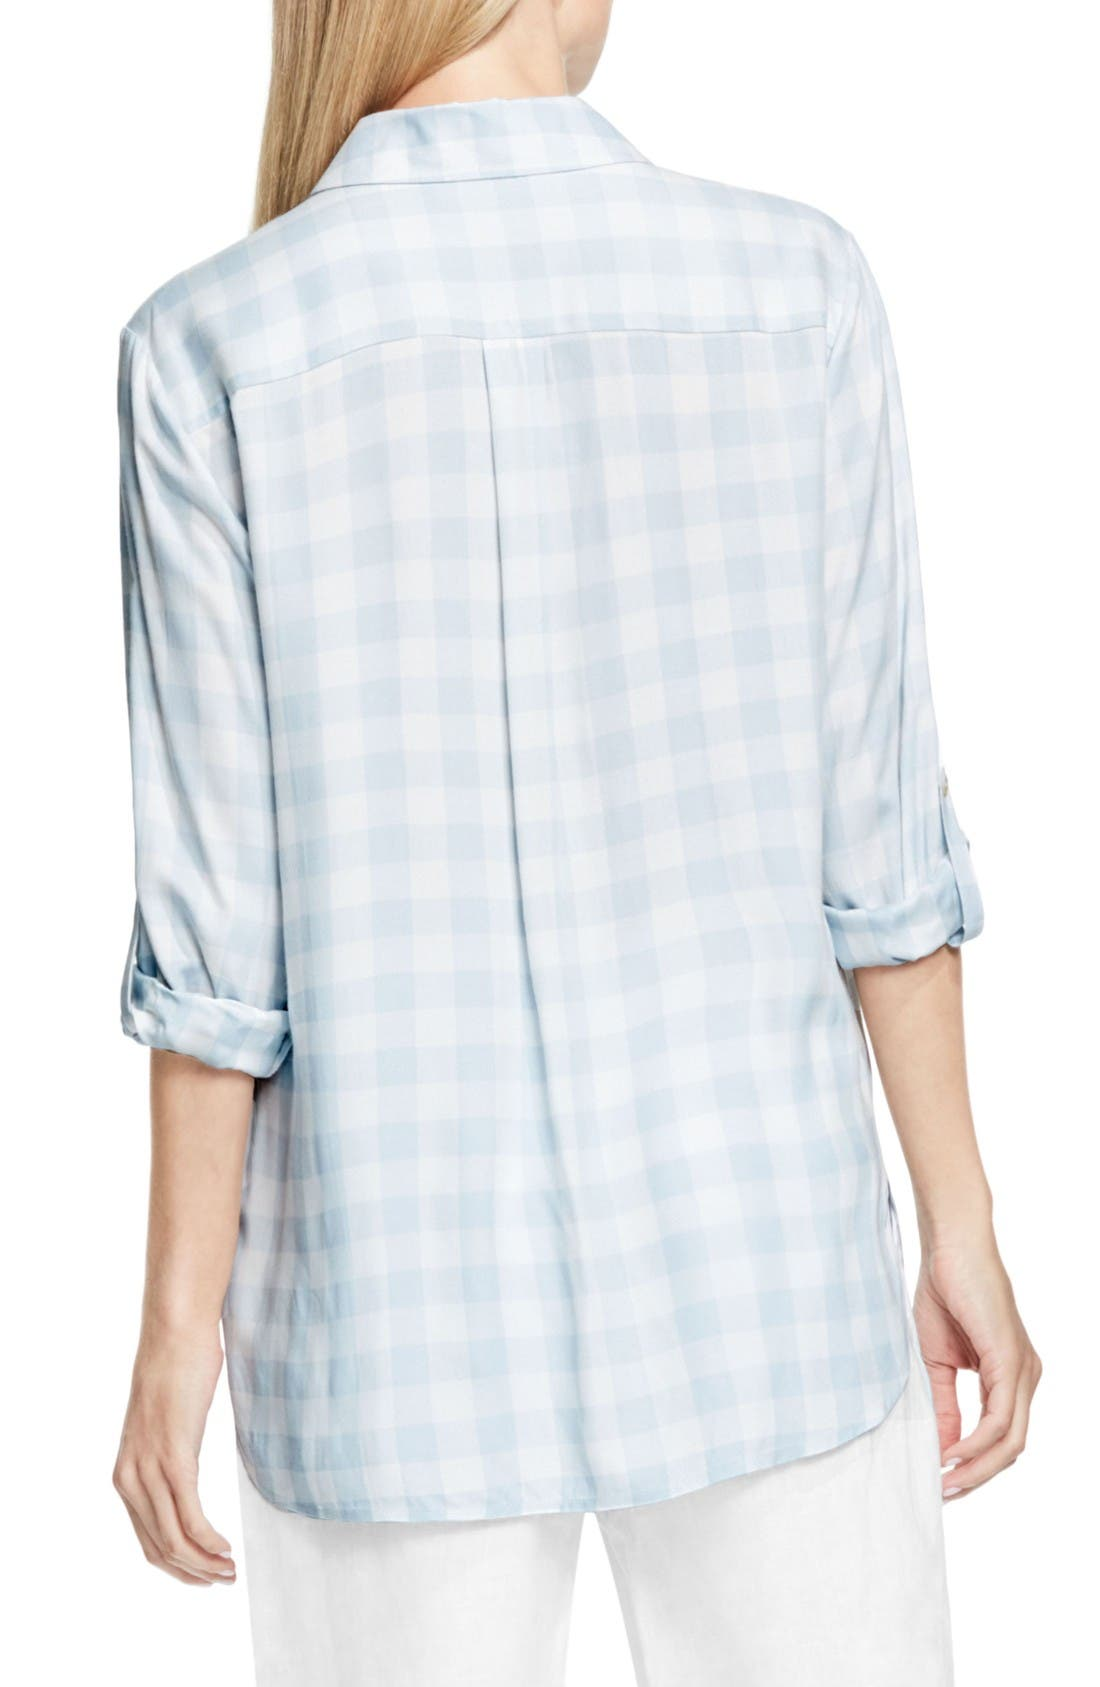 Alternate Image 2  - Two by Vince Camuto Gingham Check Shirt